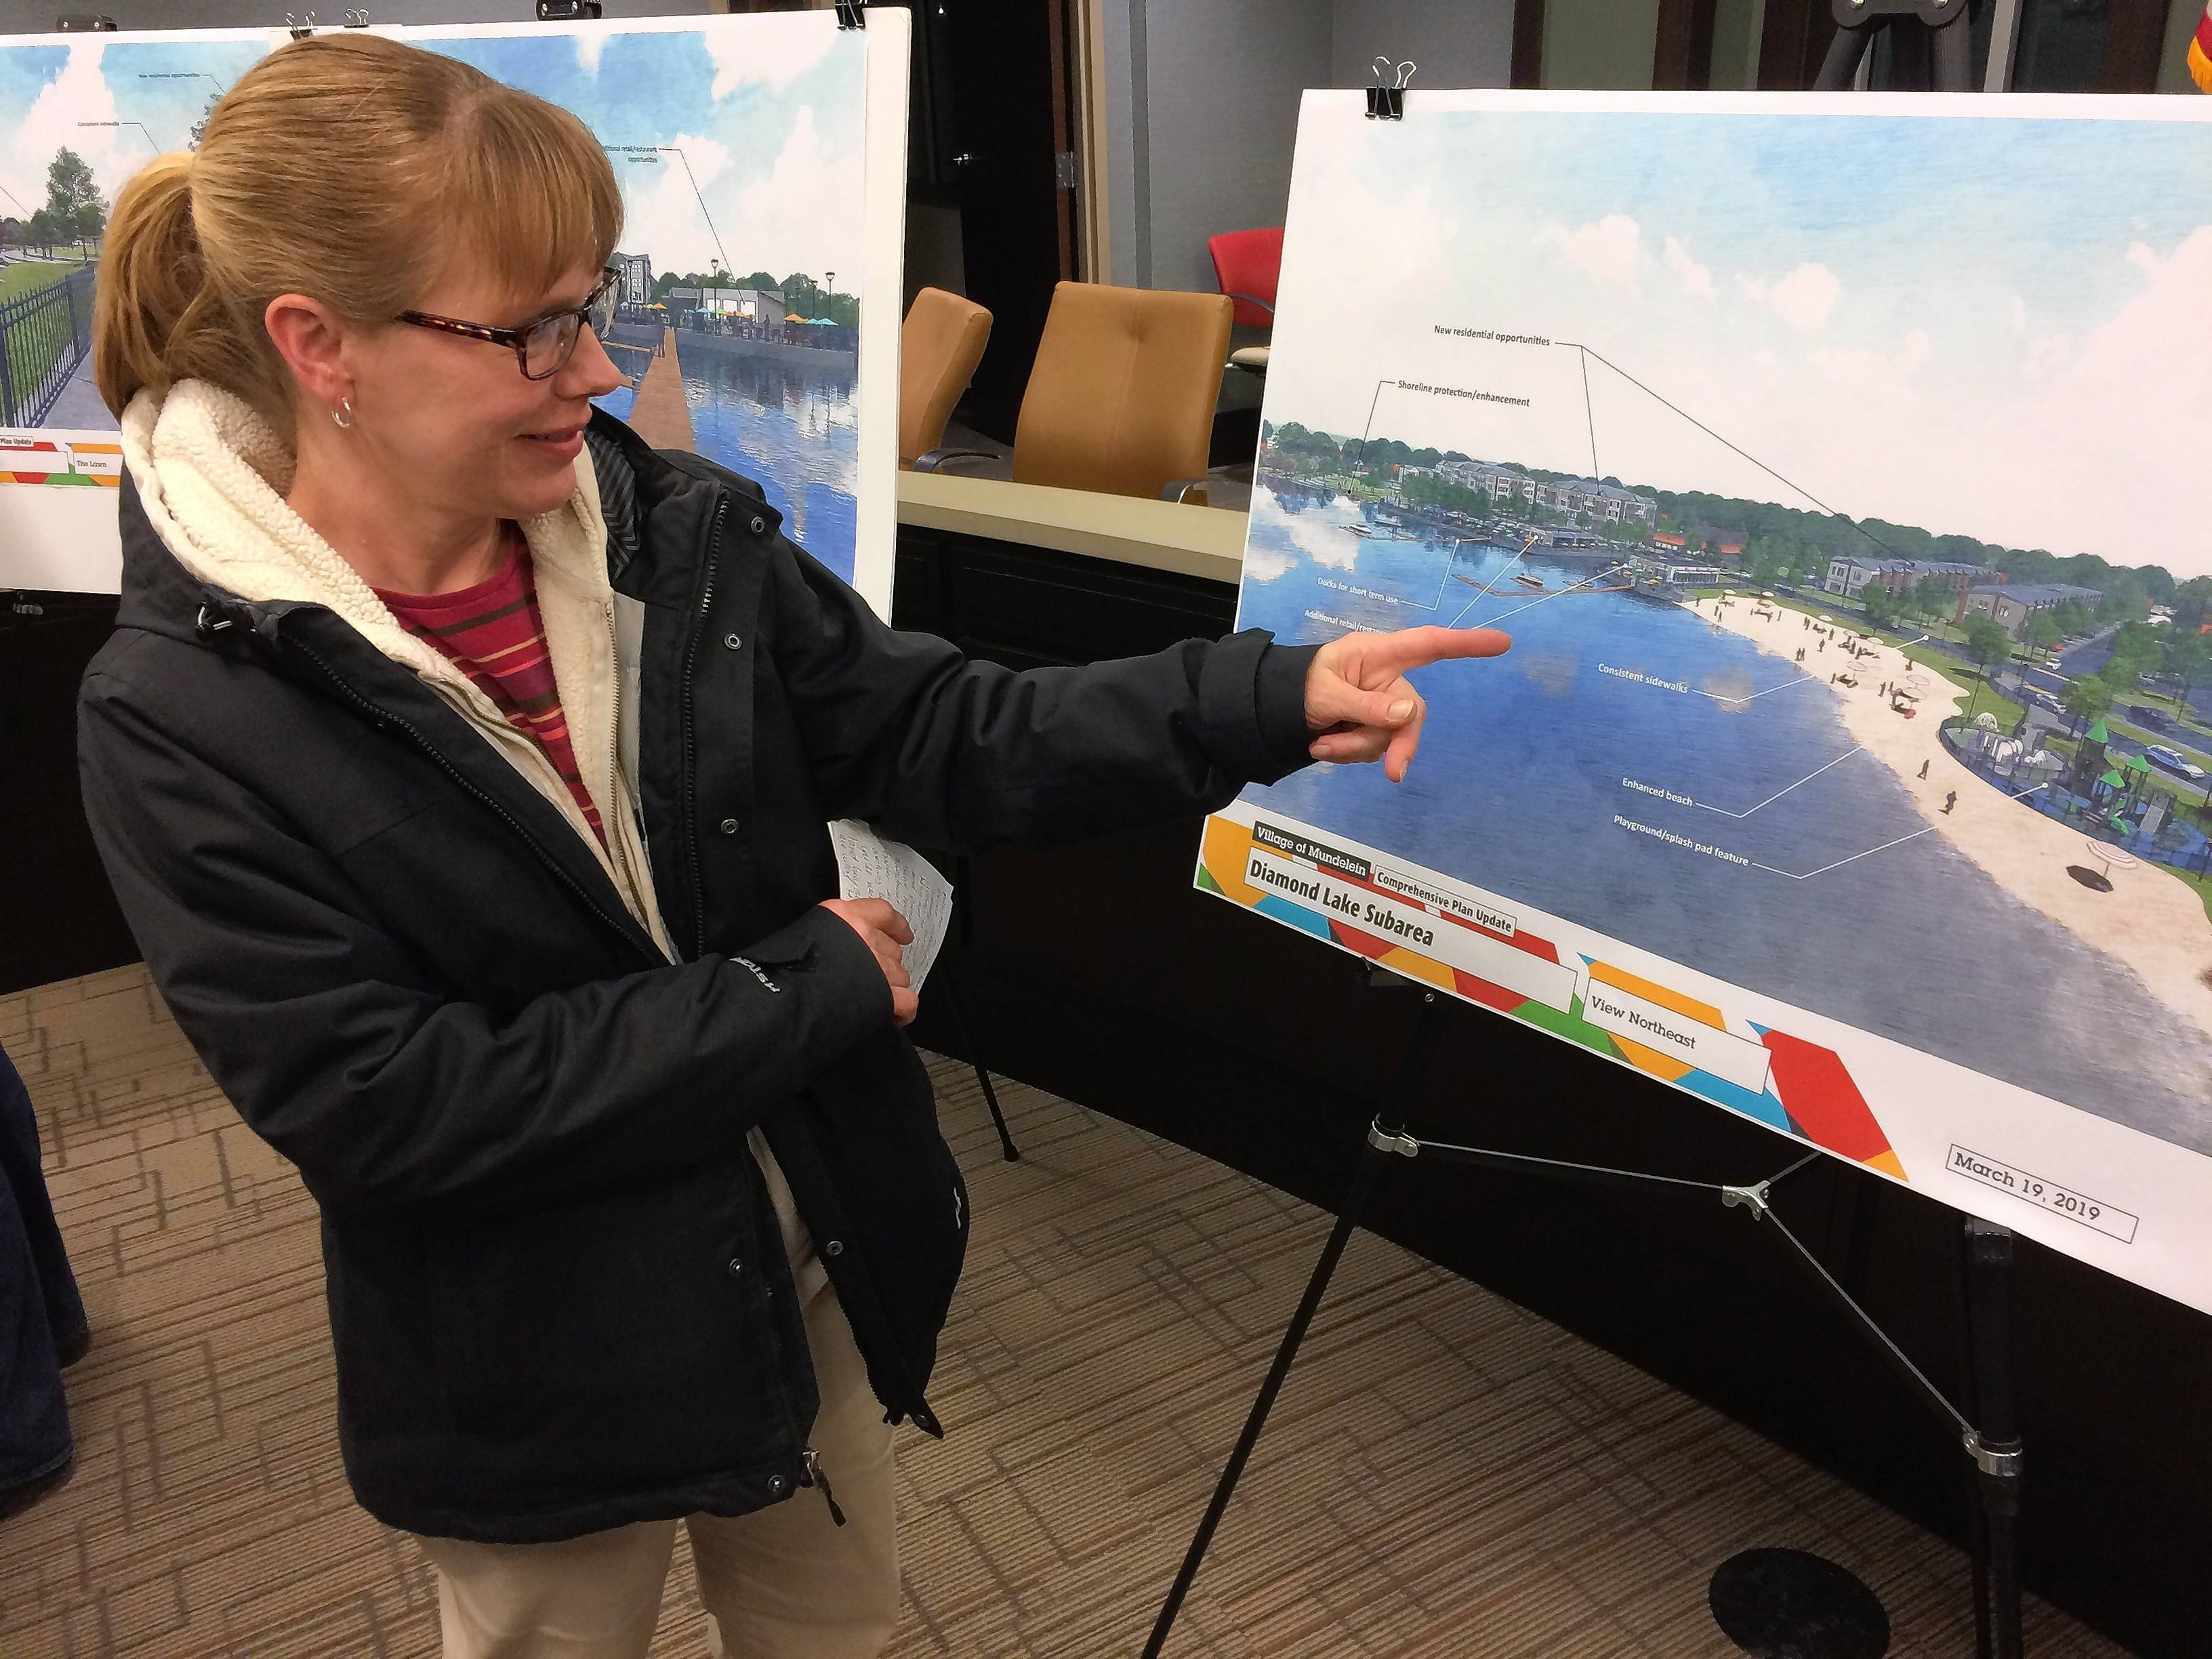 Mundelein resident Kristin May checks out one of the architectural designs for Diamond Lake on Tuesday during an open house at village hall.